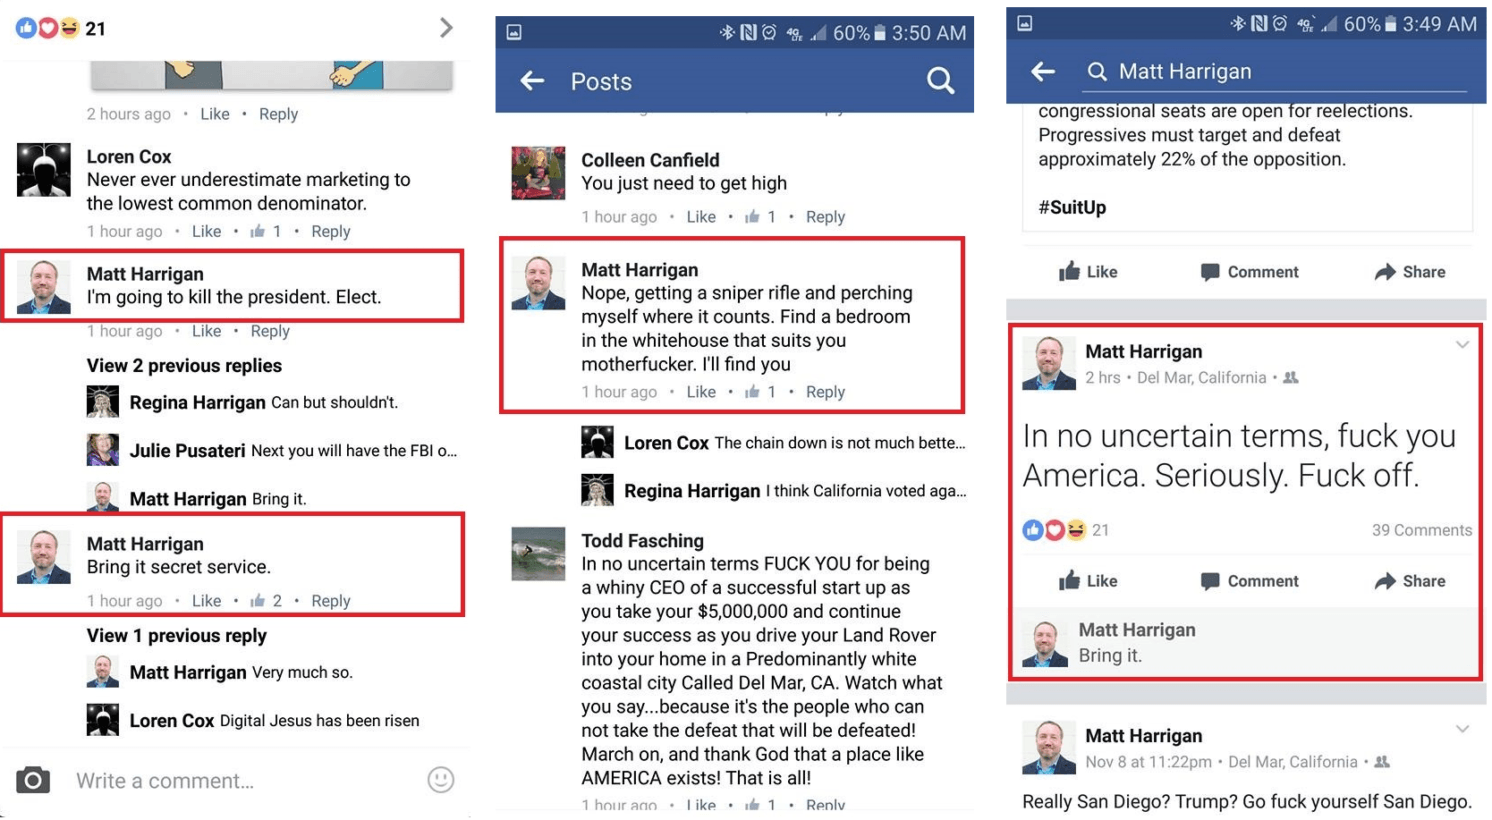 Idiot CEO threatens to kill Donald Trump on Facebook, gets fired for it